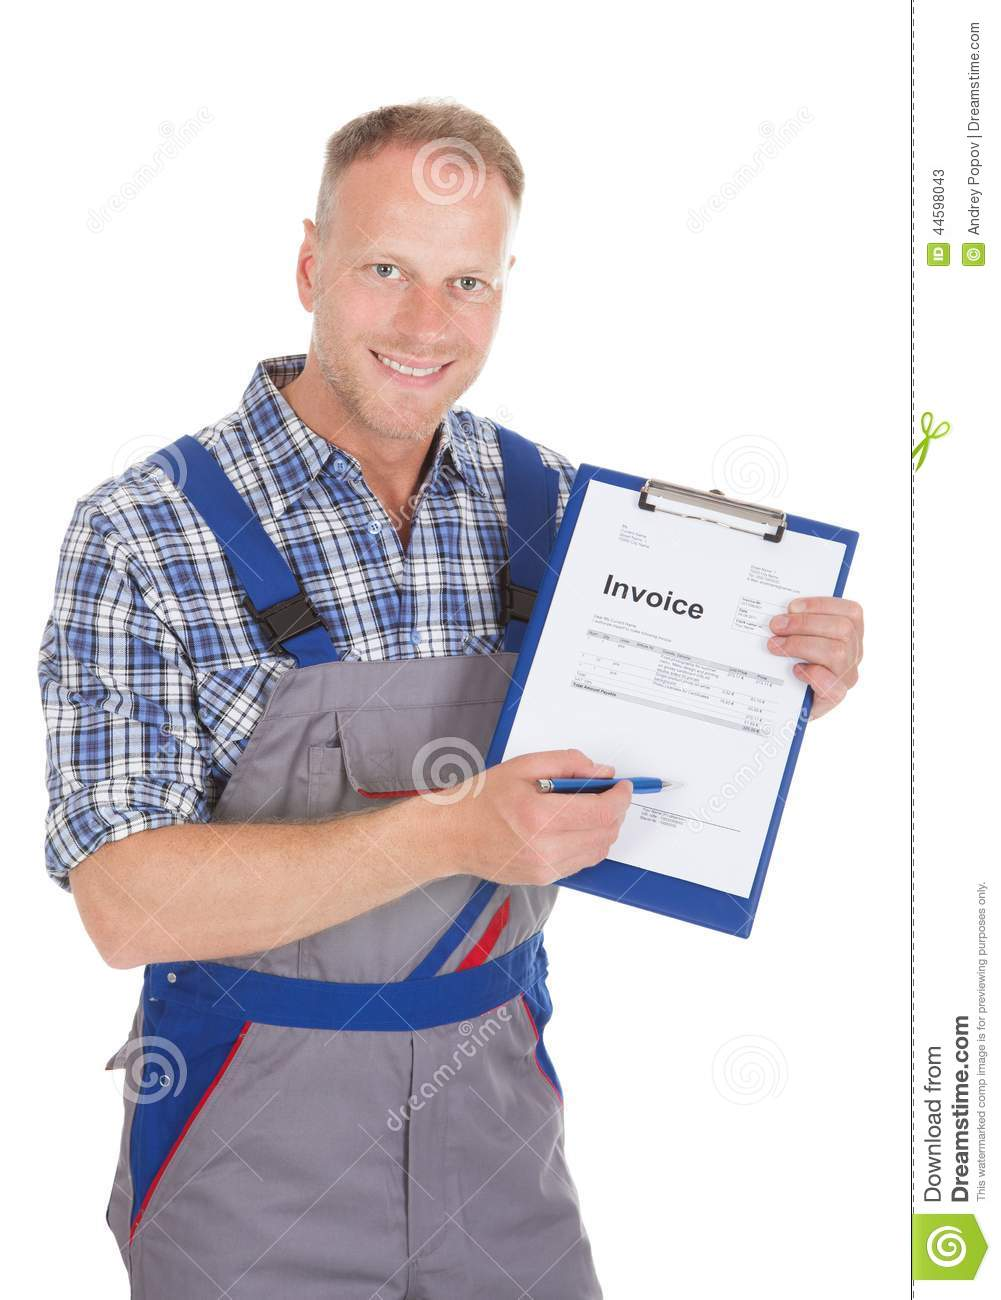 handyman showing invoice on clipboard stock photo image 44598043 handyman showing invoice on clipboard